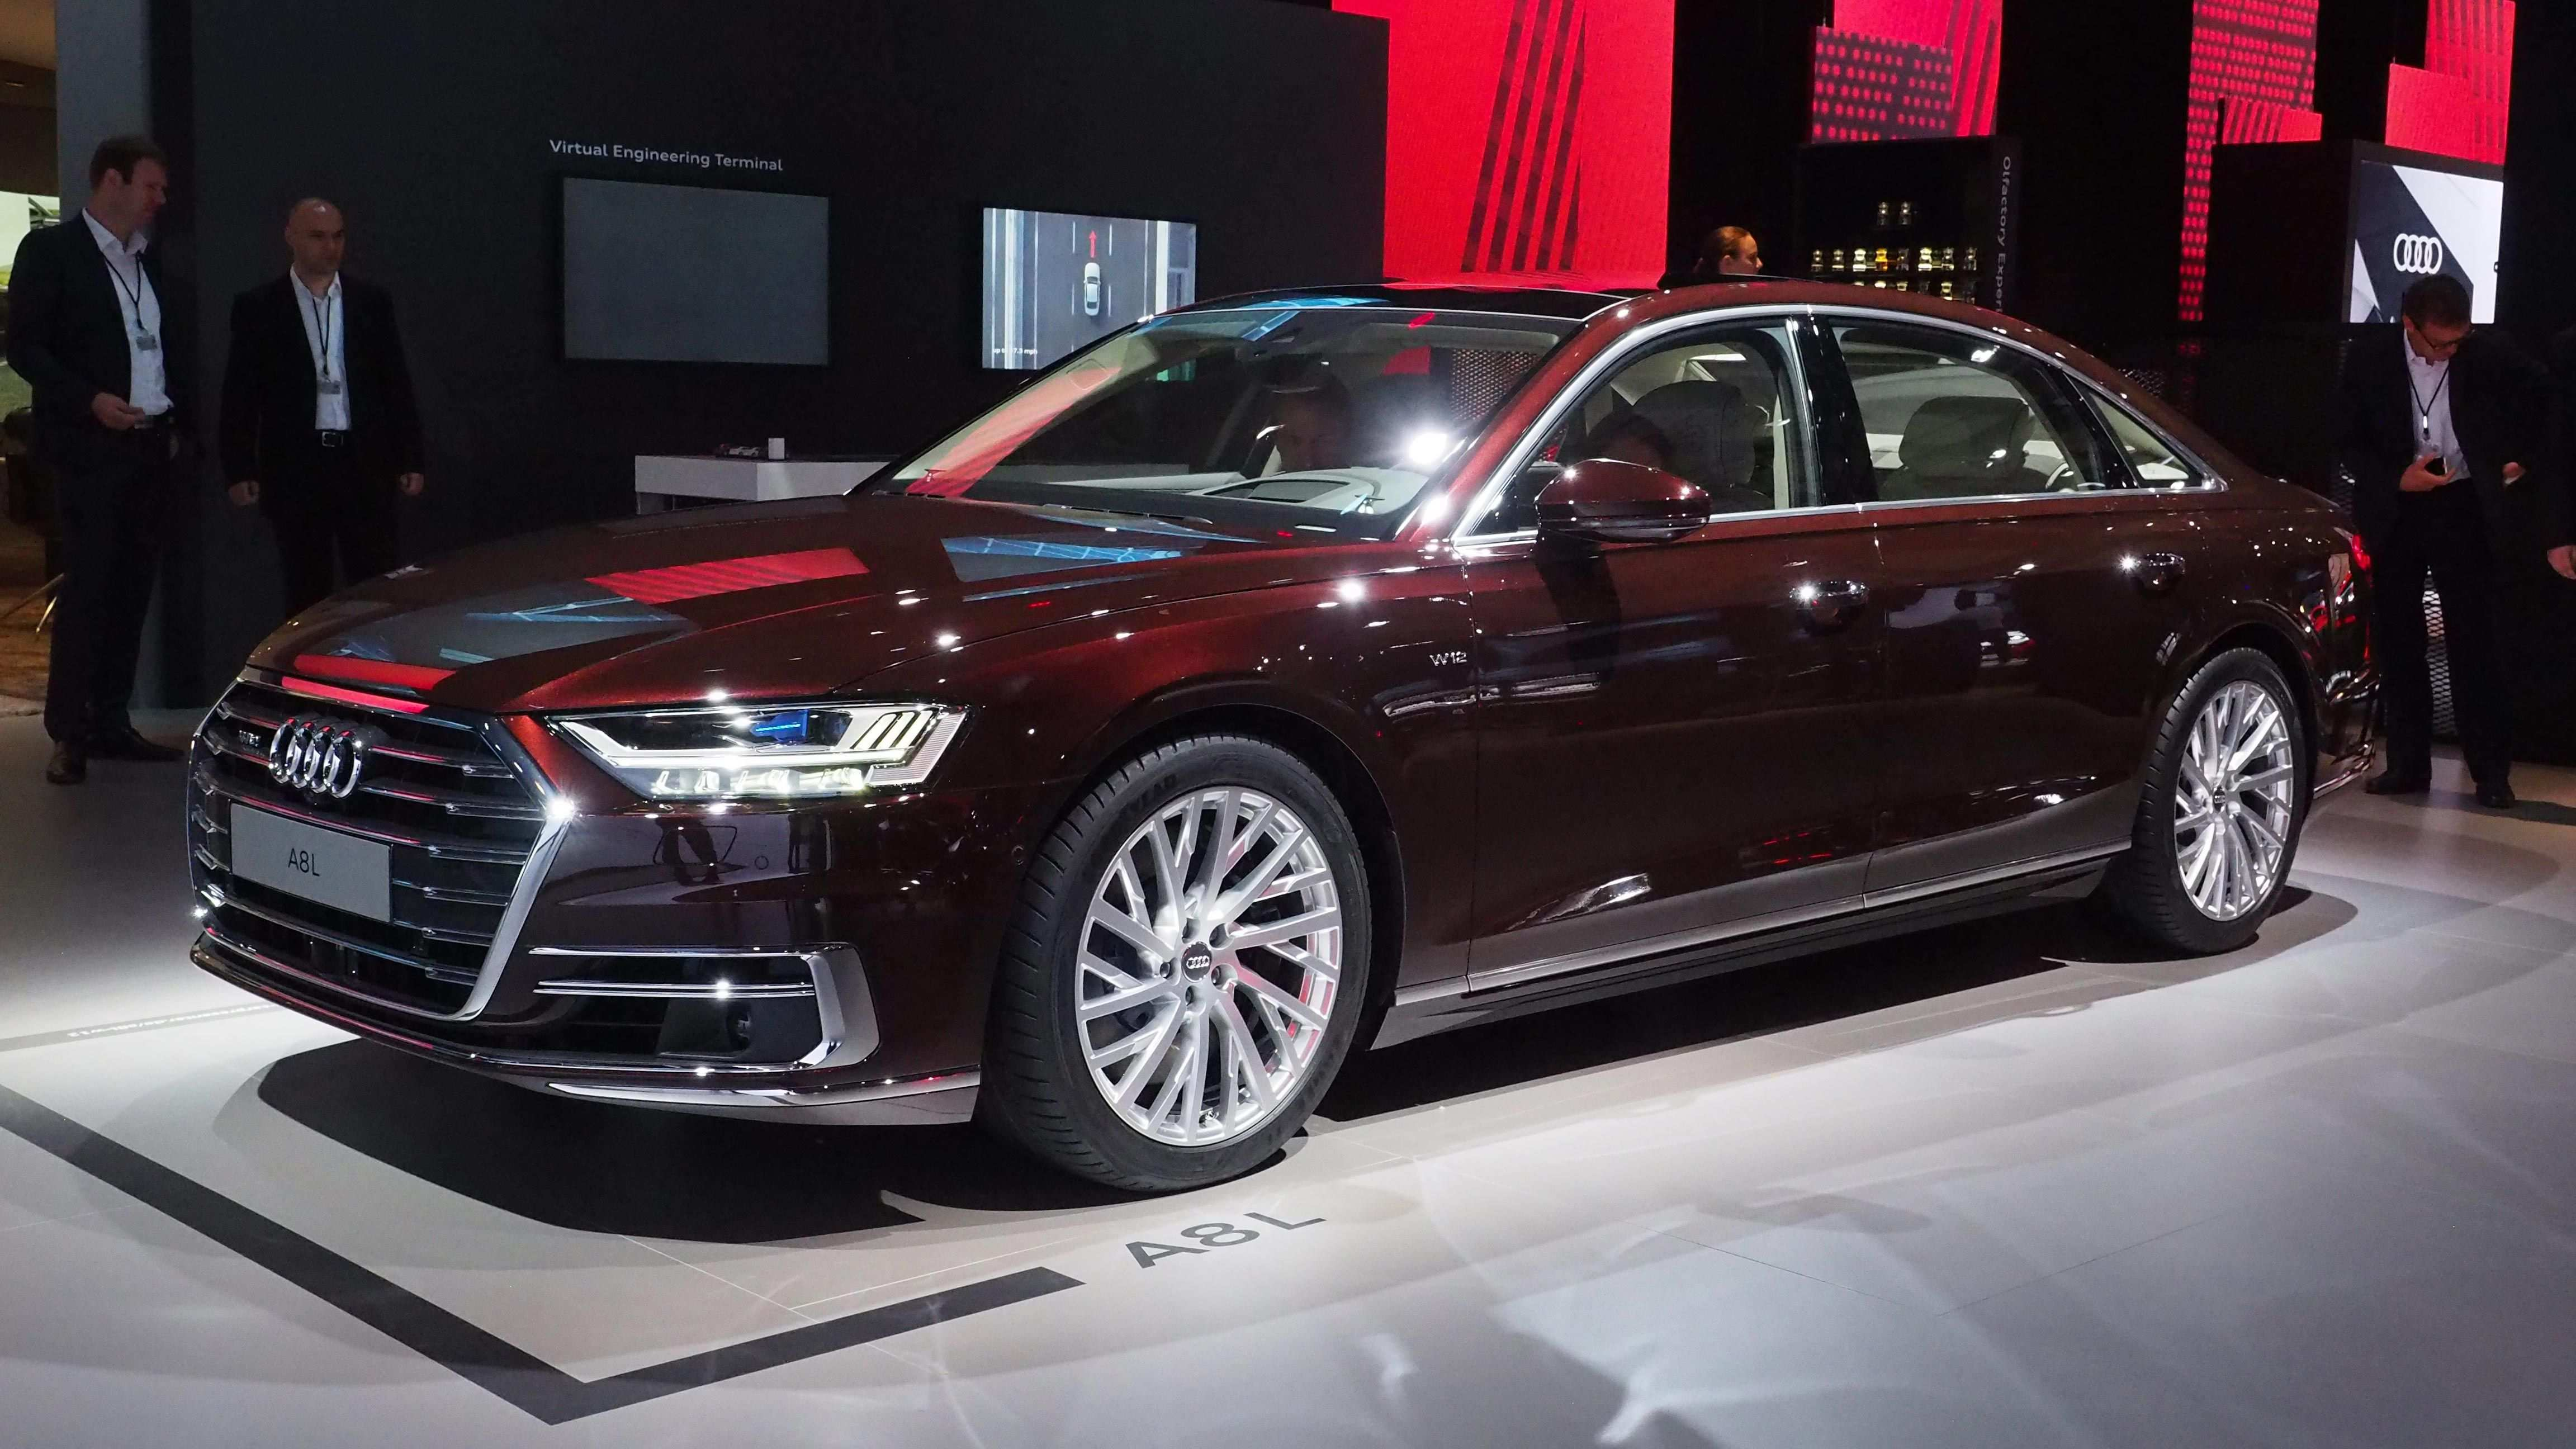 84 Best Review 2020 Audi A8 2020 Review for 2020 Audi A8 2020